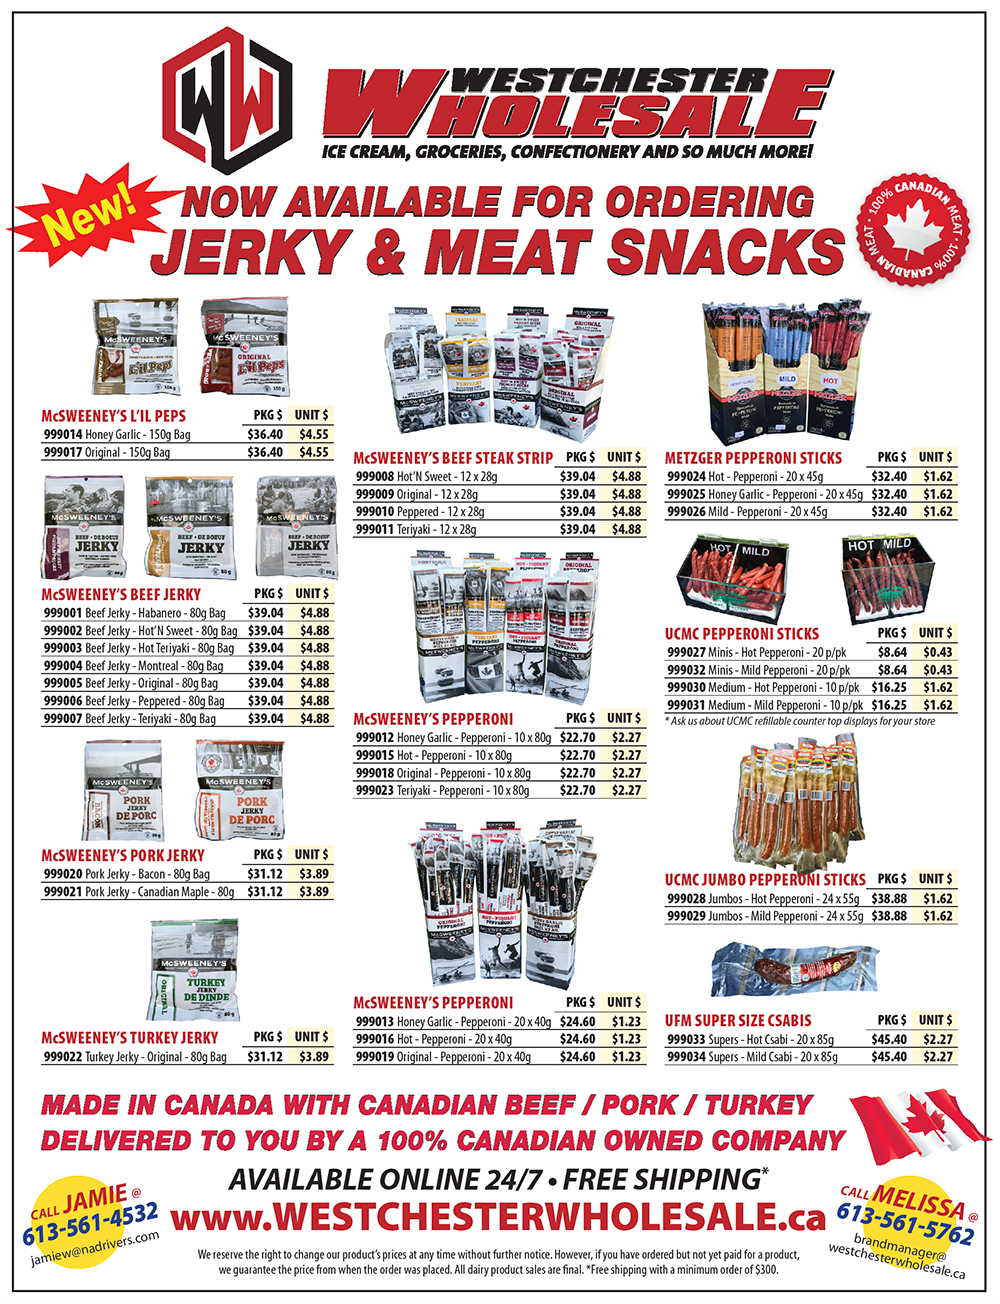 Checkout our current Westchester Wholesale flyers